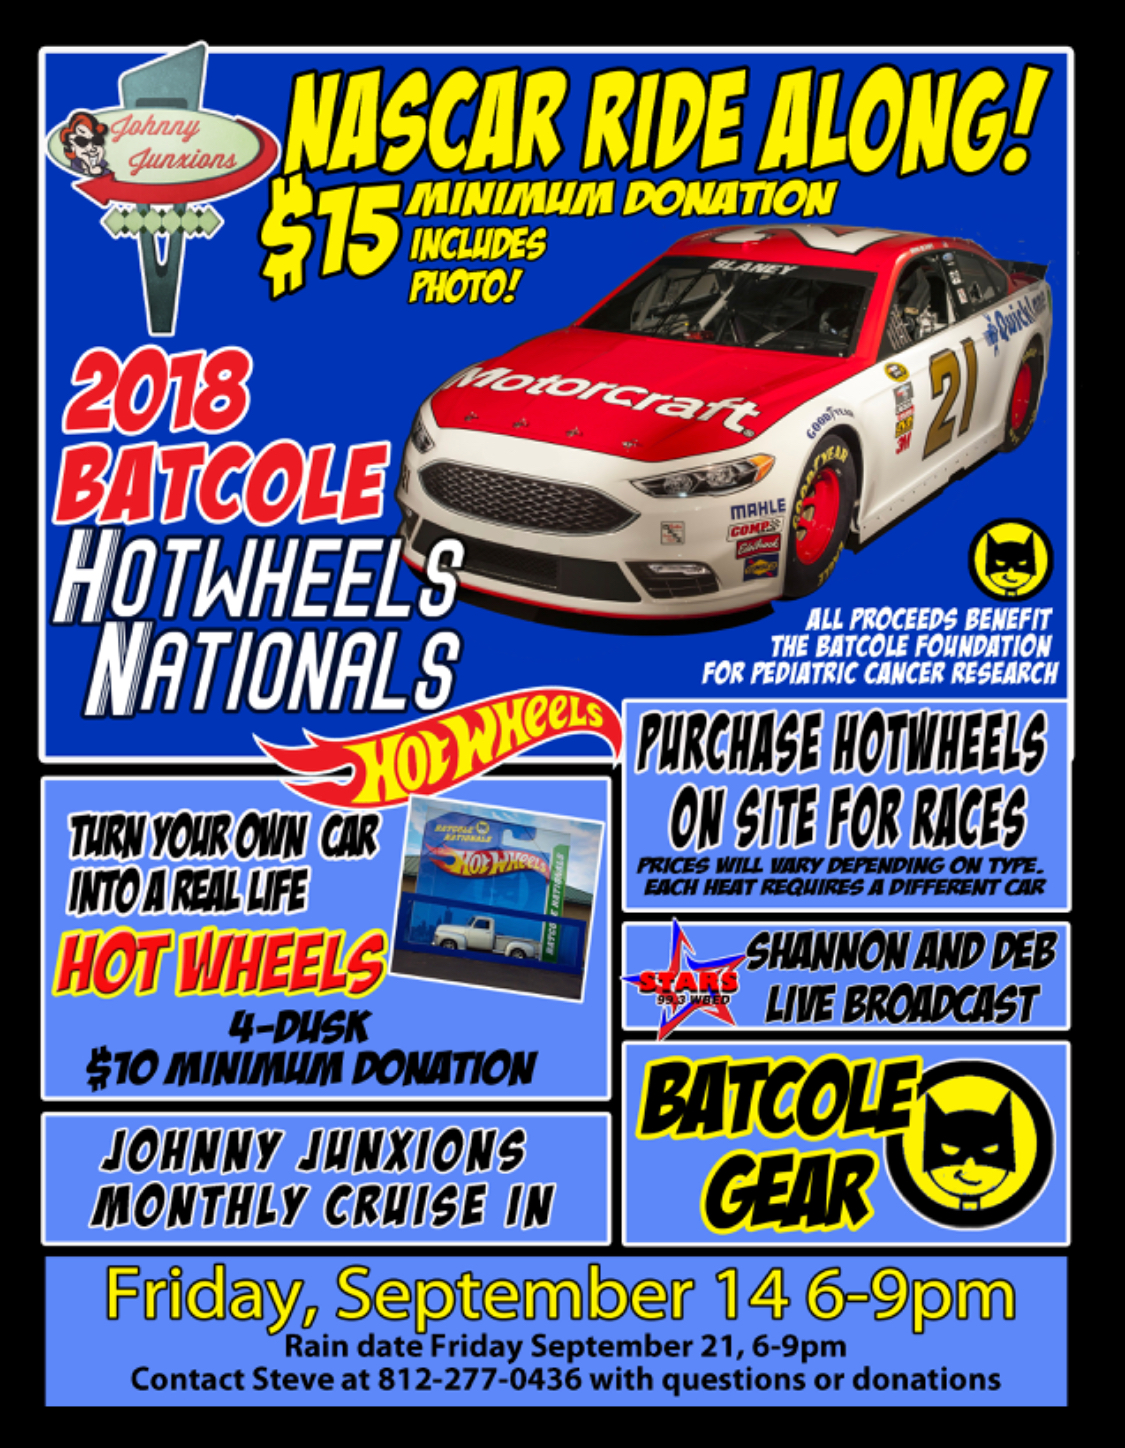 2018 Hot Wheel flyer.jpg